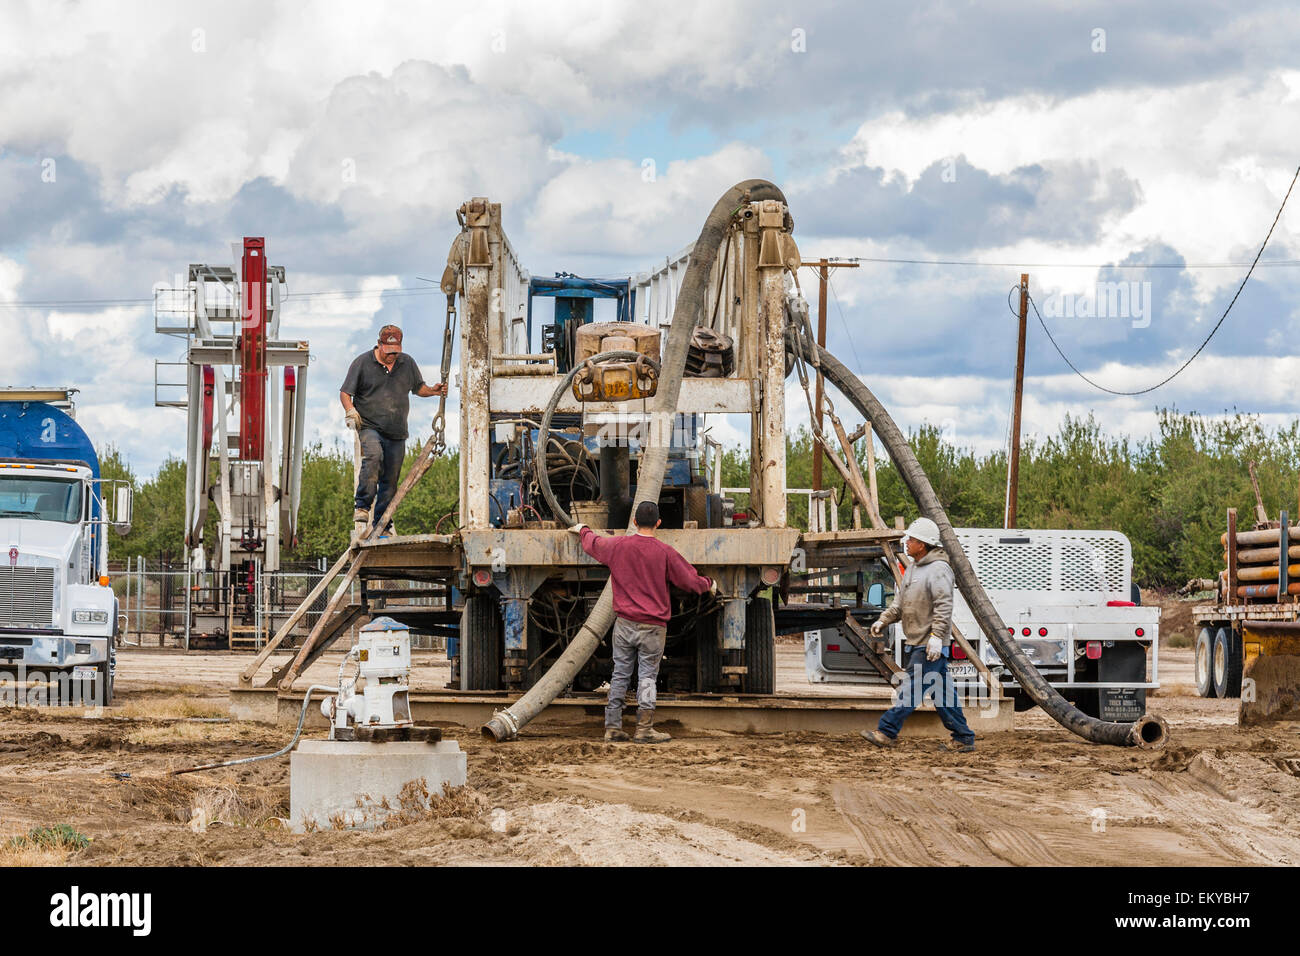 Water well being drilling next to oil well and fracking site in almond orchard. Kern County, California - Stock Image